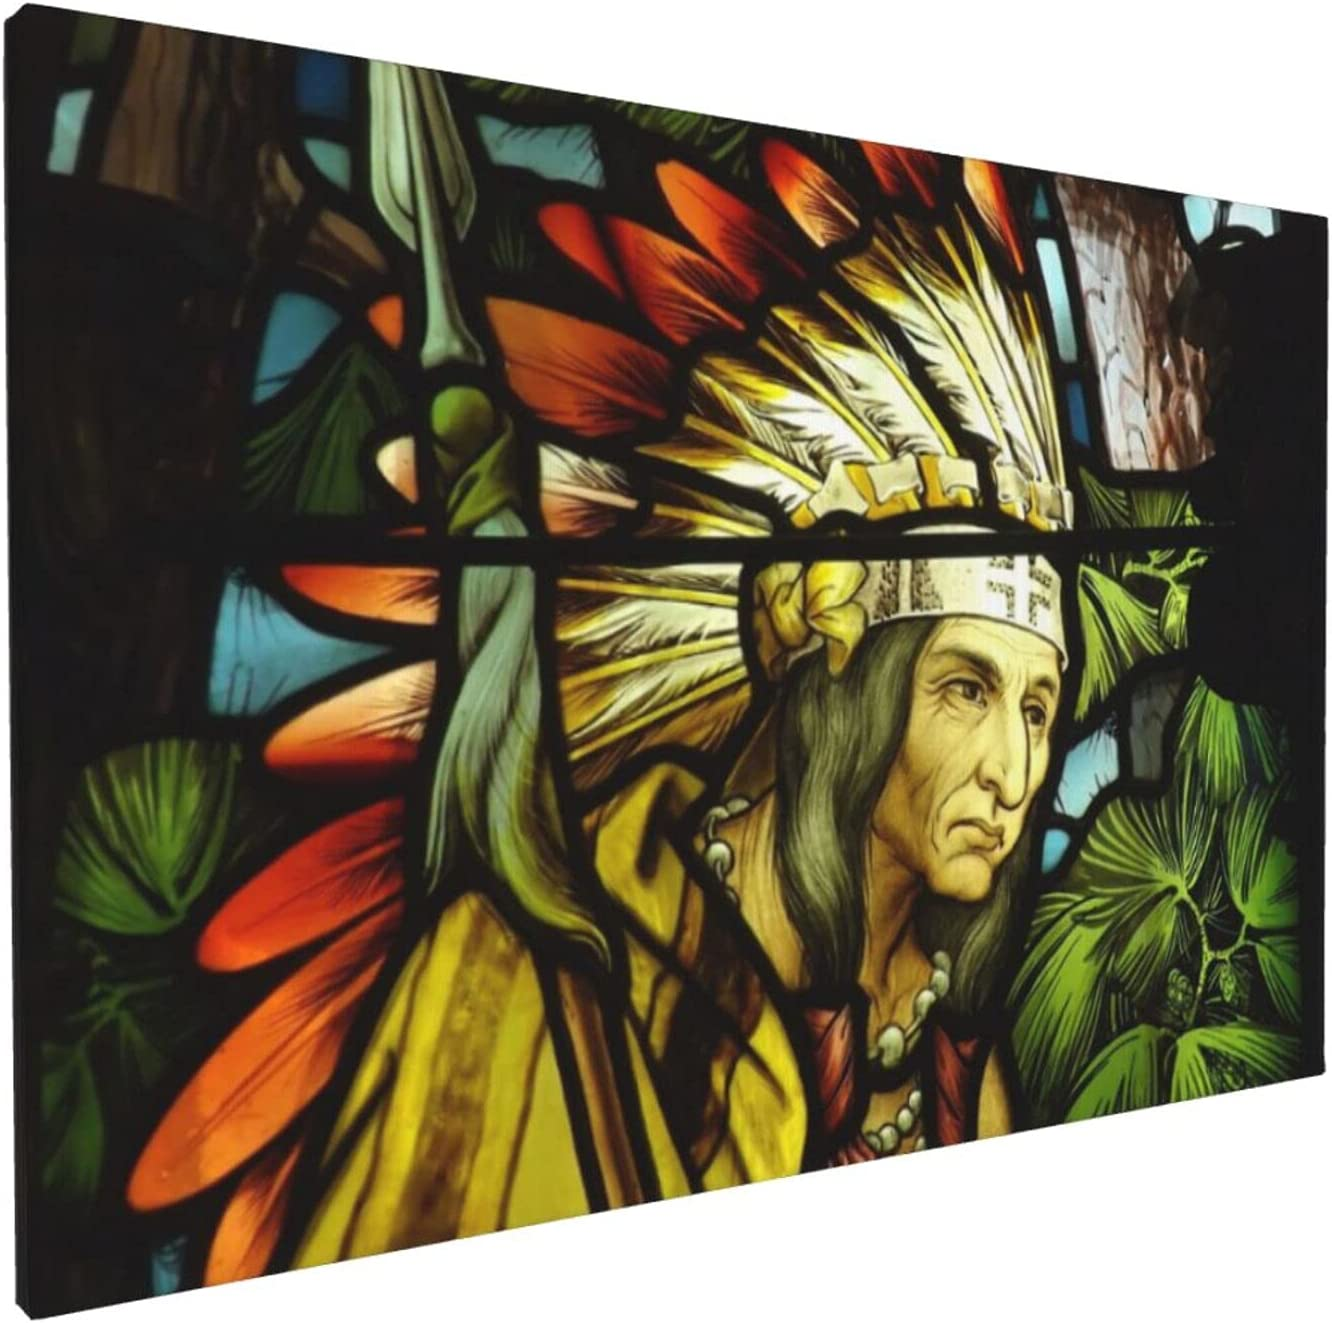 Wall Art Canvas Painting, Stained Glass Art Native American Indian Modern Decorative Framed Artwork For Home Decor Ready To Hang 18x12 In